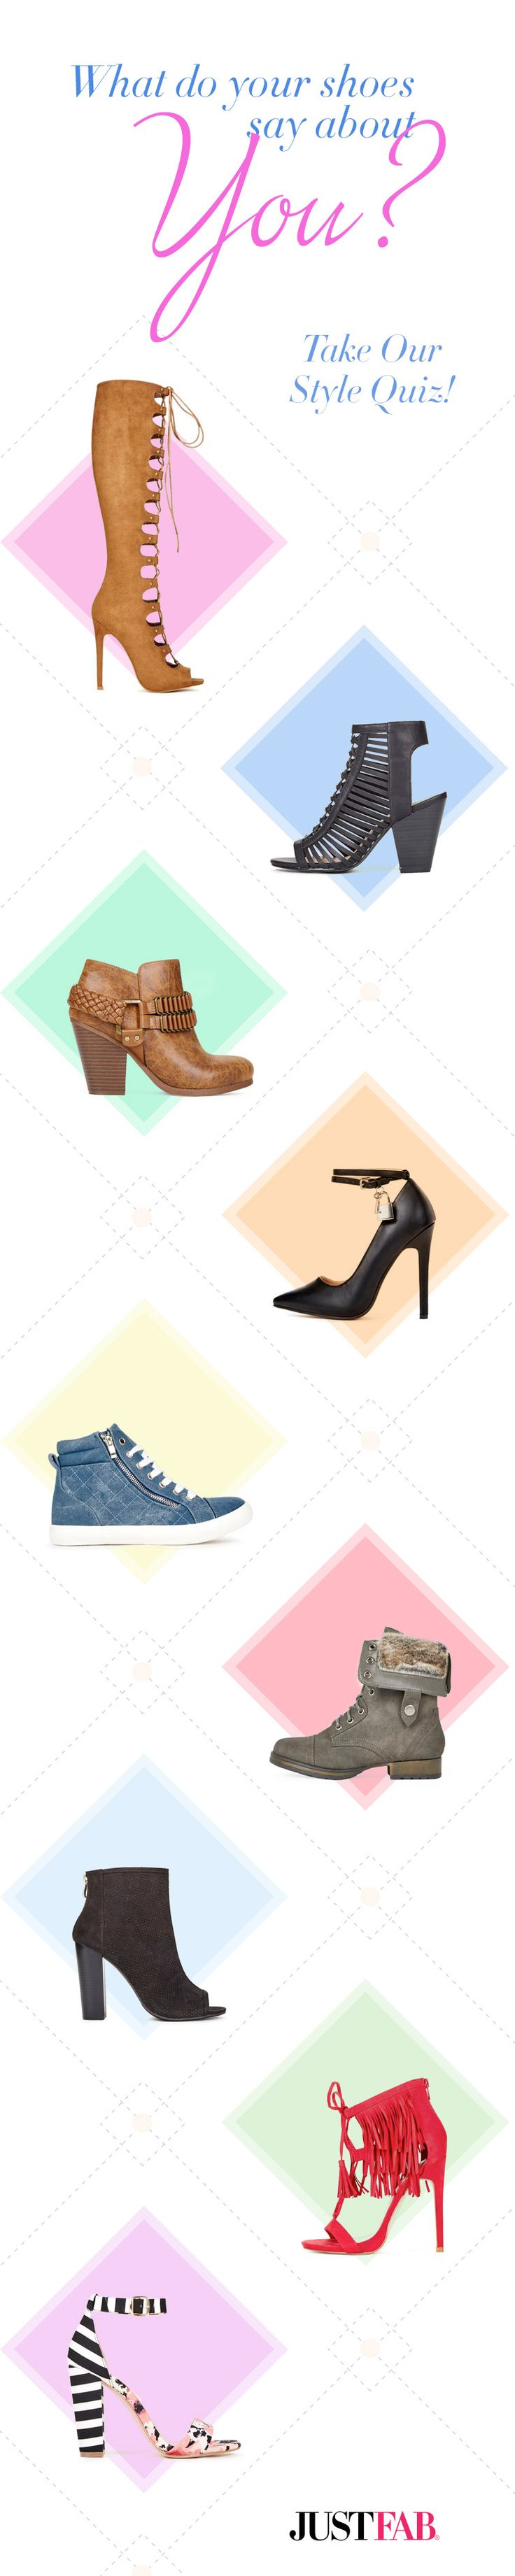 Treat yourself to not one, but two, pairs of Boots and Booties for just $39.95 when you become a JustFab VIP! As a VIP, you'll enjoy a new boutique of personalized styles each month, as well as exclusive pricing, early access to sales & free shipping on orders over $49. But this deal won't last forever! Take the Style Profile Quiz today to get this exclusive offer.